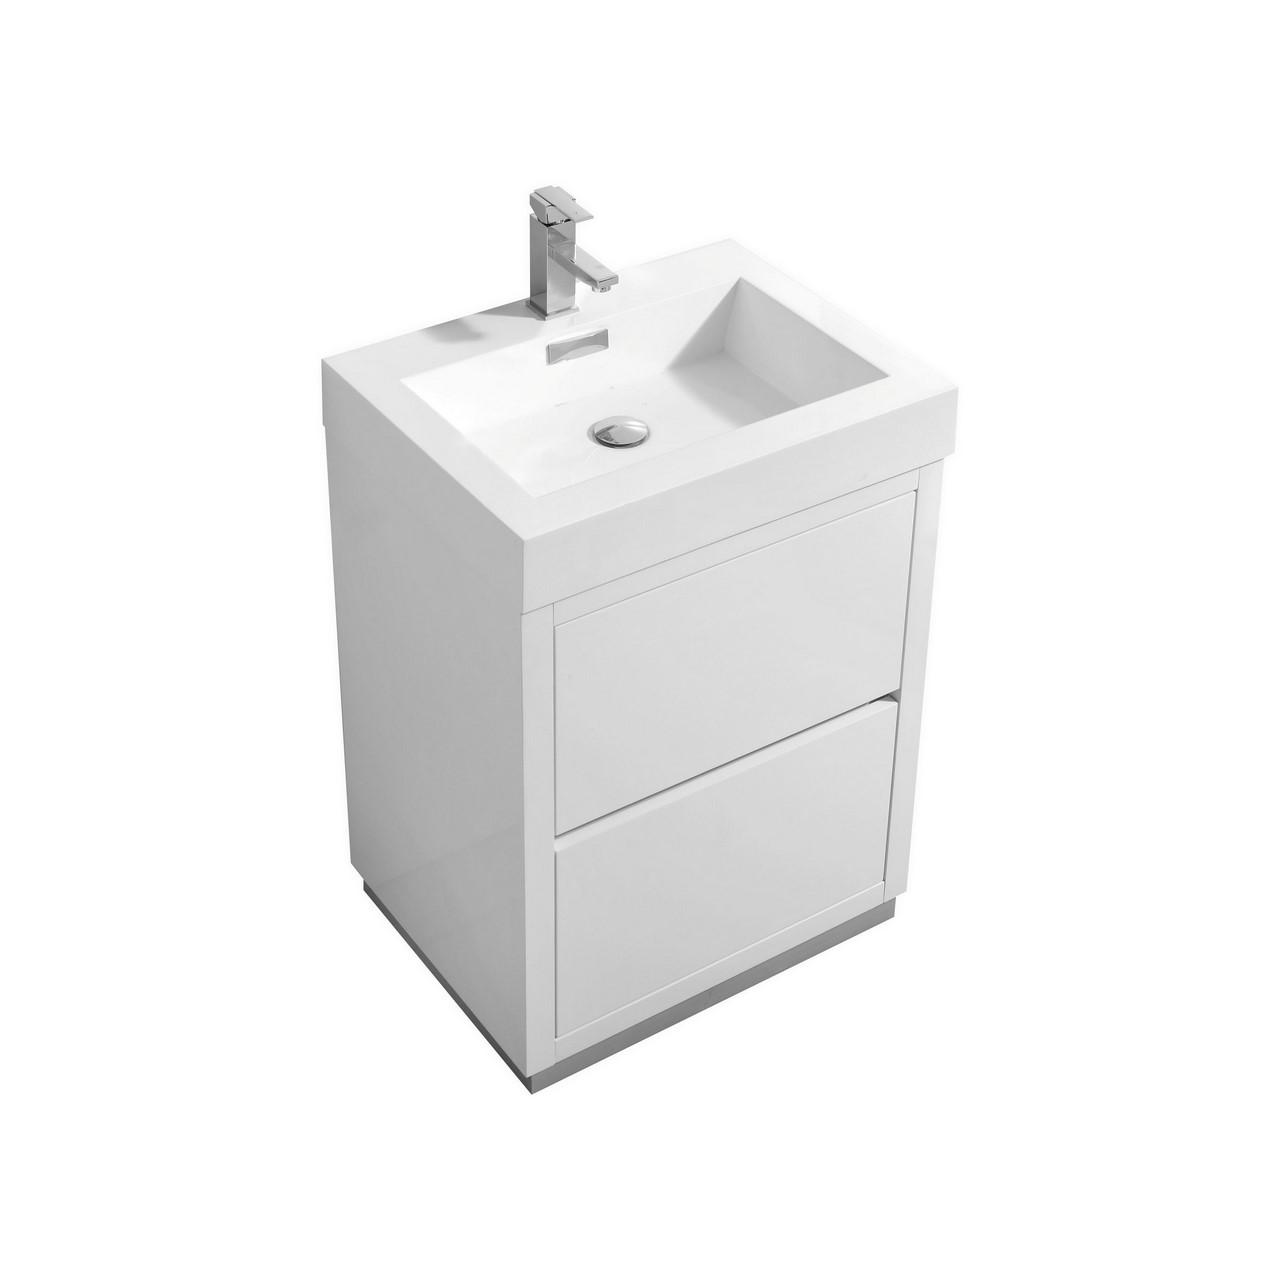 Bliss 24 High Gloss White Free Standing Modern Bathroom Vanity